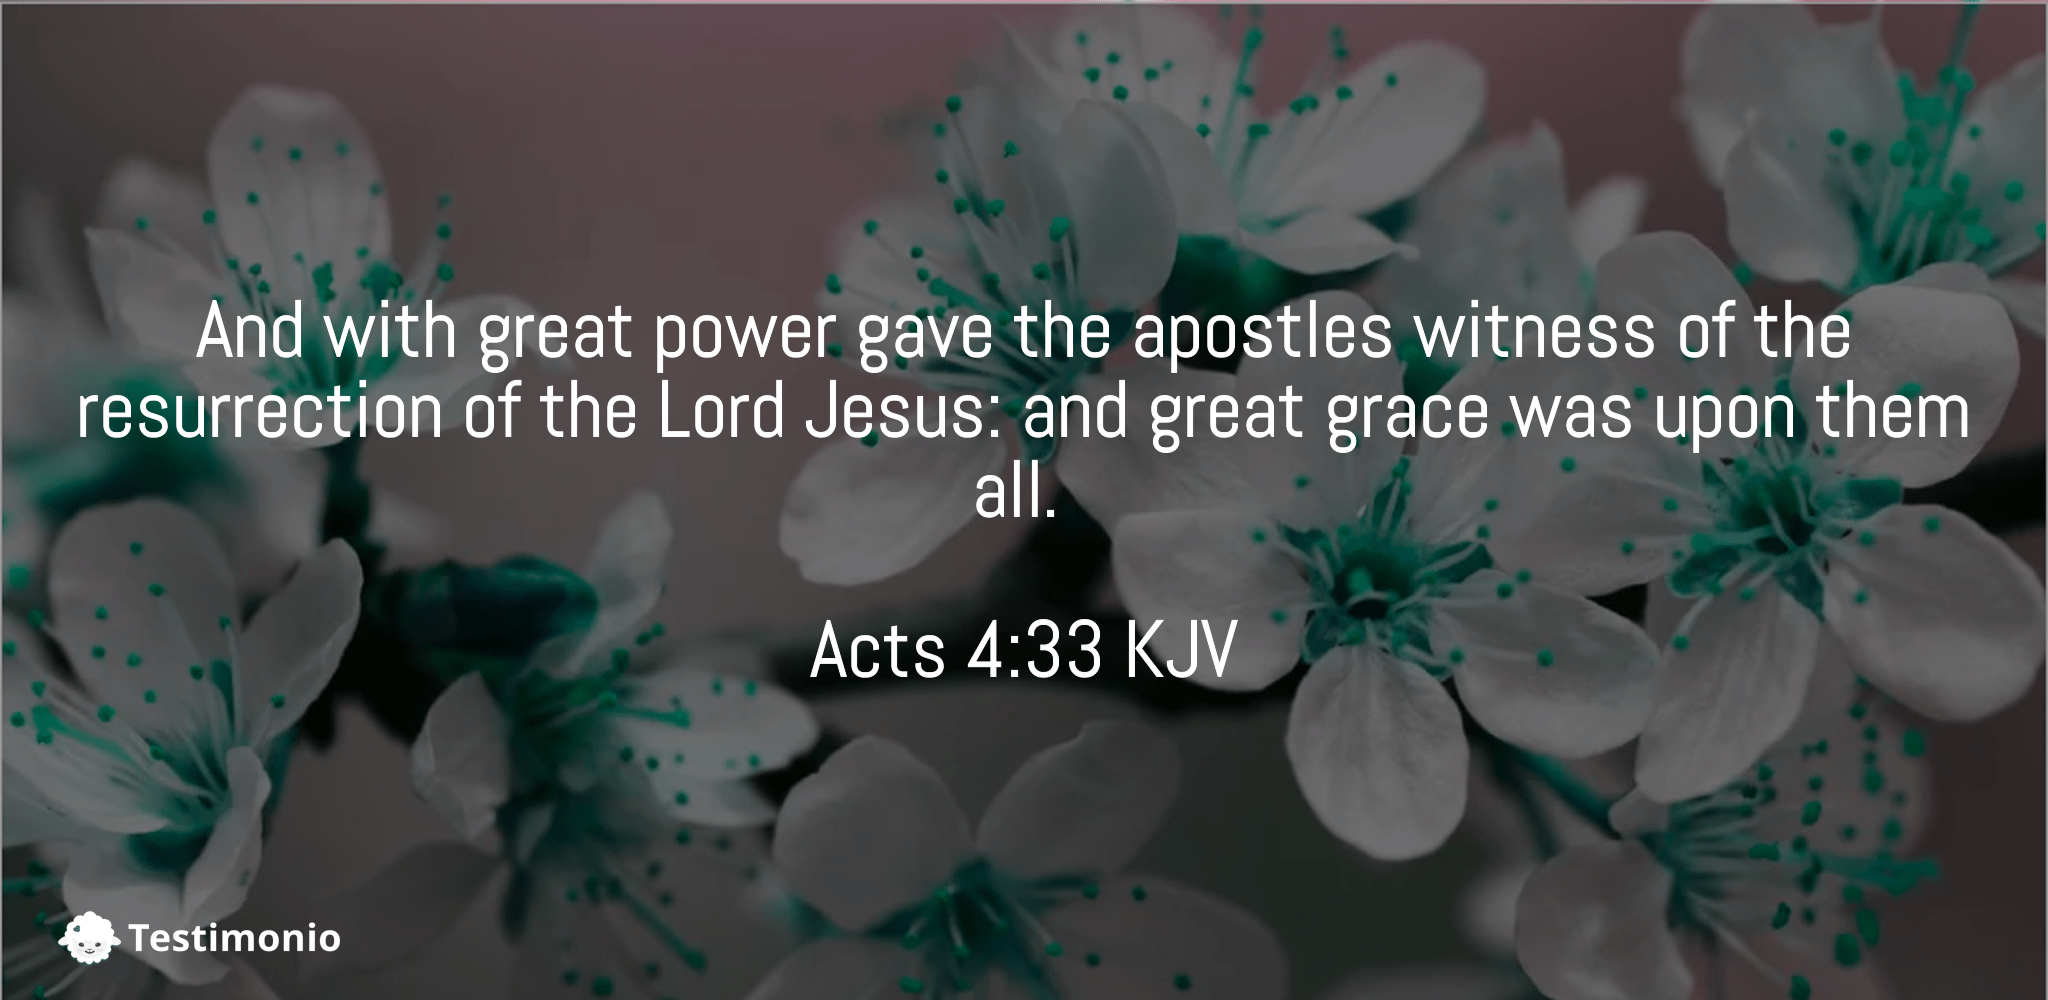 Acts 4:33